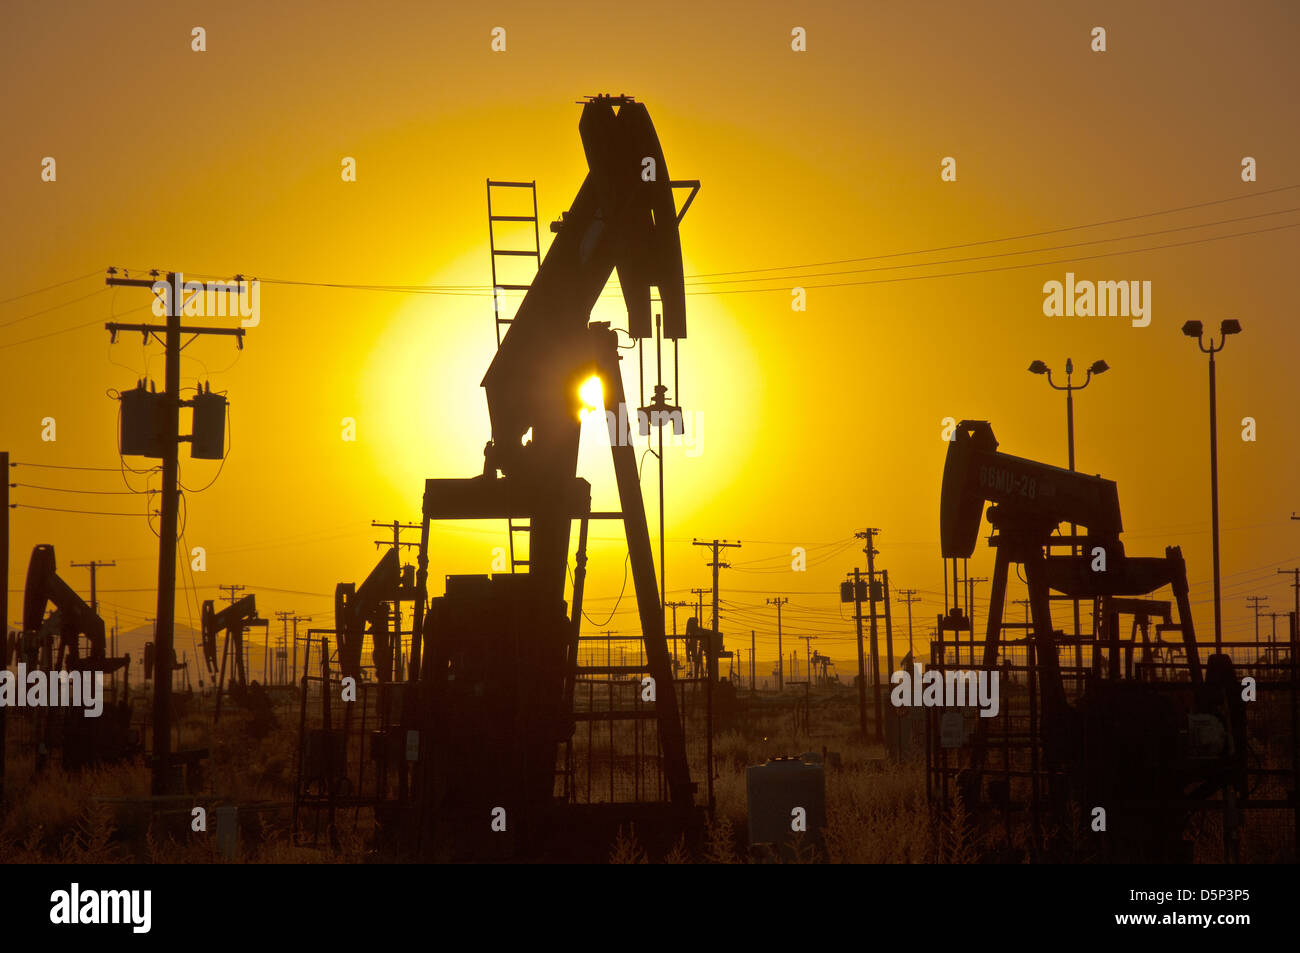 oil-pumps-at-sunset-in-california-D5P3P5